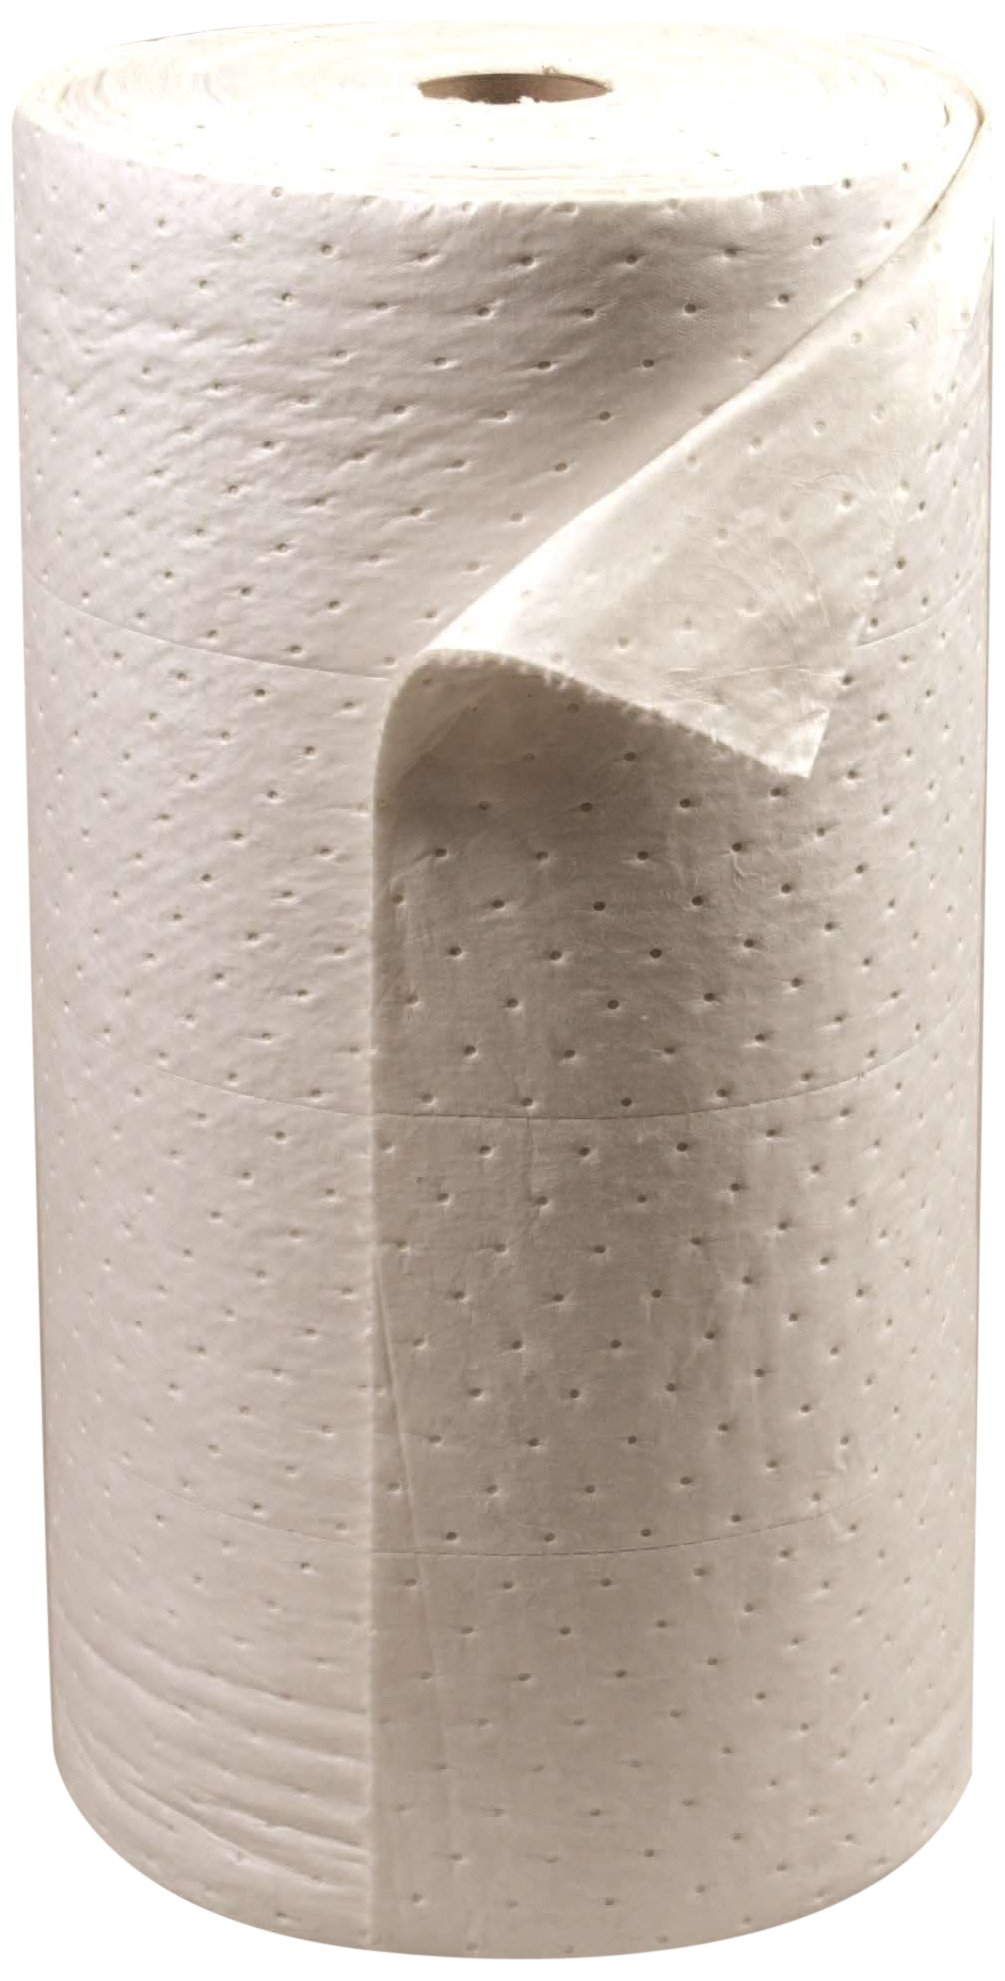 Stardust Spill Products 3SDWRB Oil-Only Lightweight Bonded Perforated Roll, 30''x300', Pack of 1